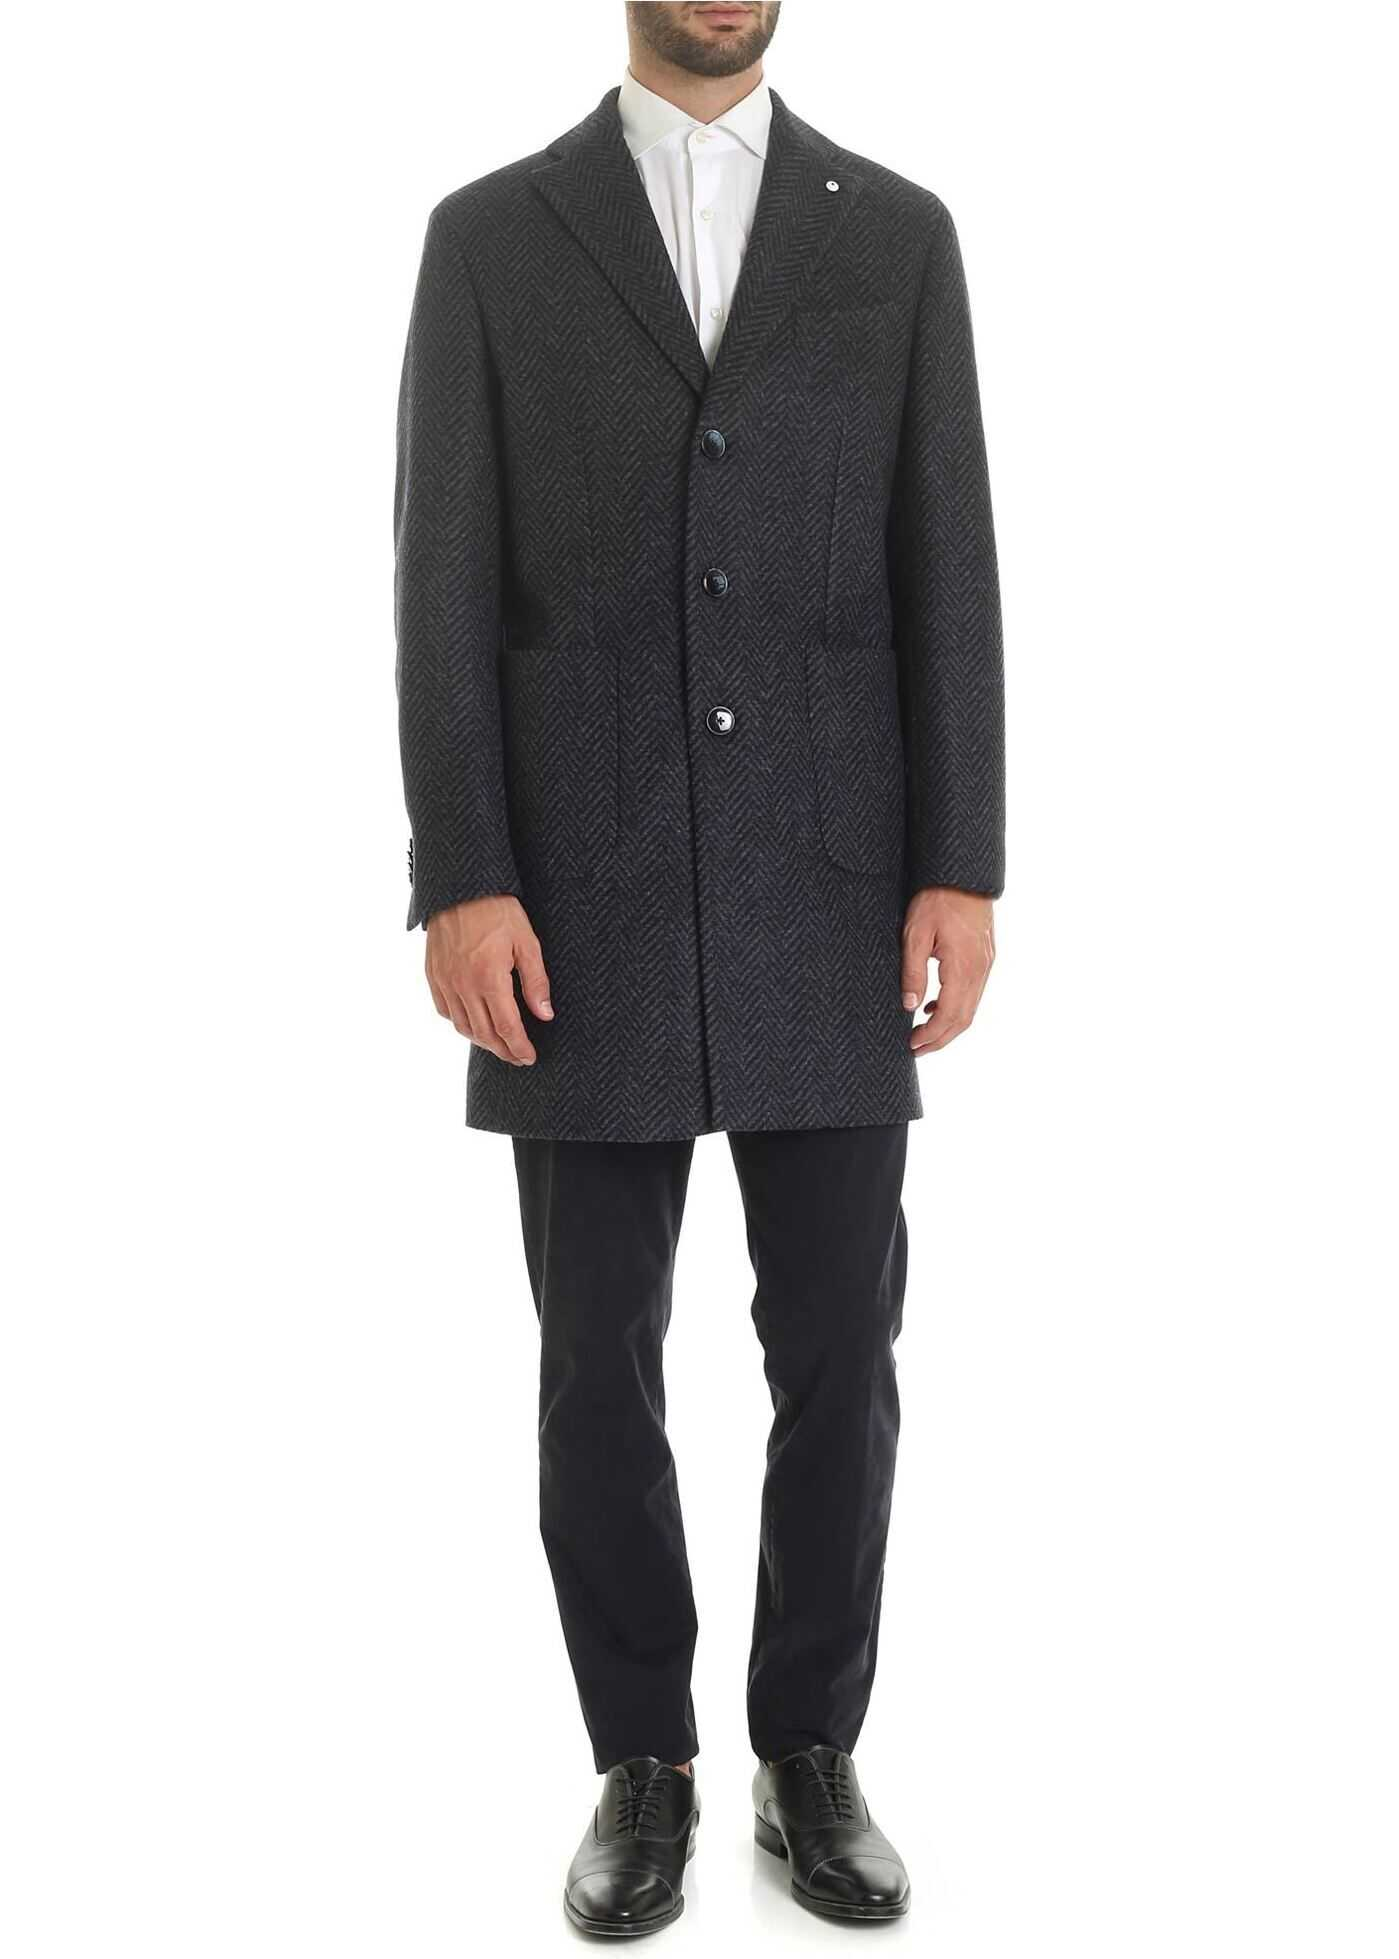 L.B.M. 1911 Dandy Coat In Blue And Black Herringbone Blue